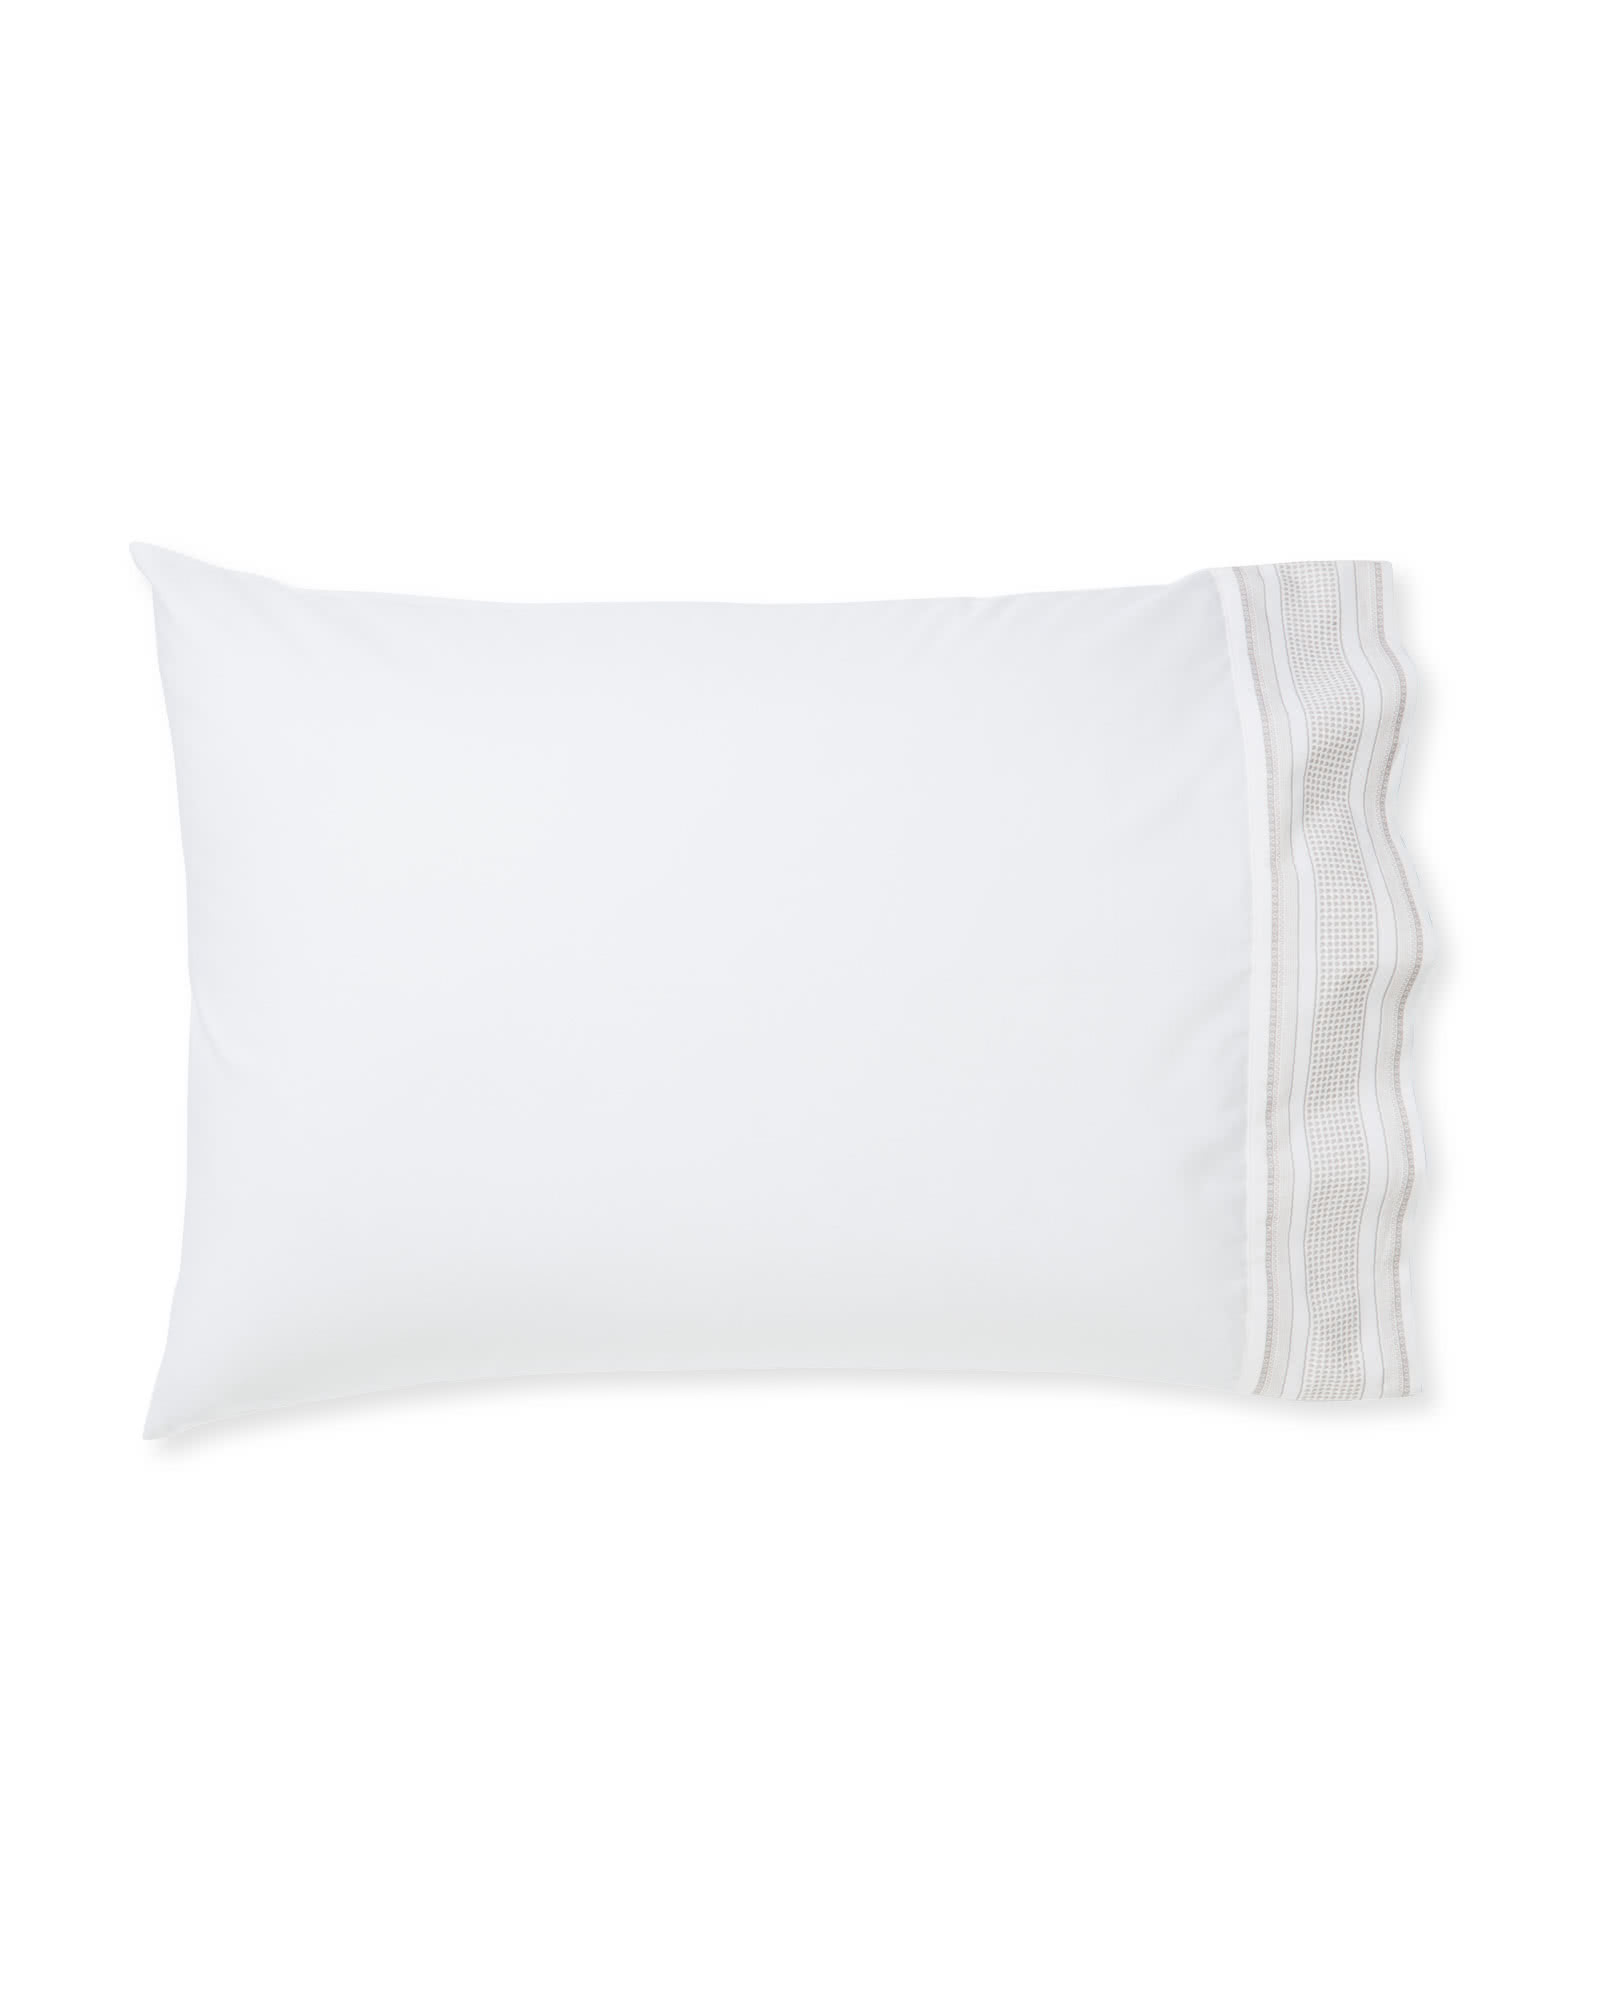 Extra Beaumont Pillowcases (Set of 2) - Bark,